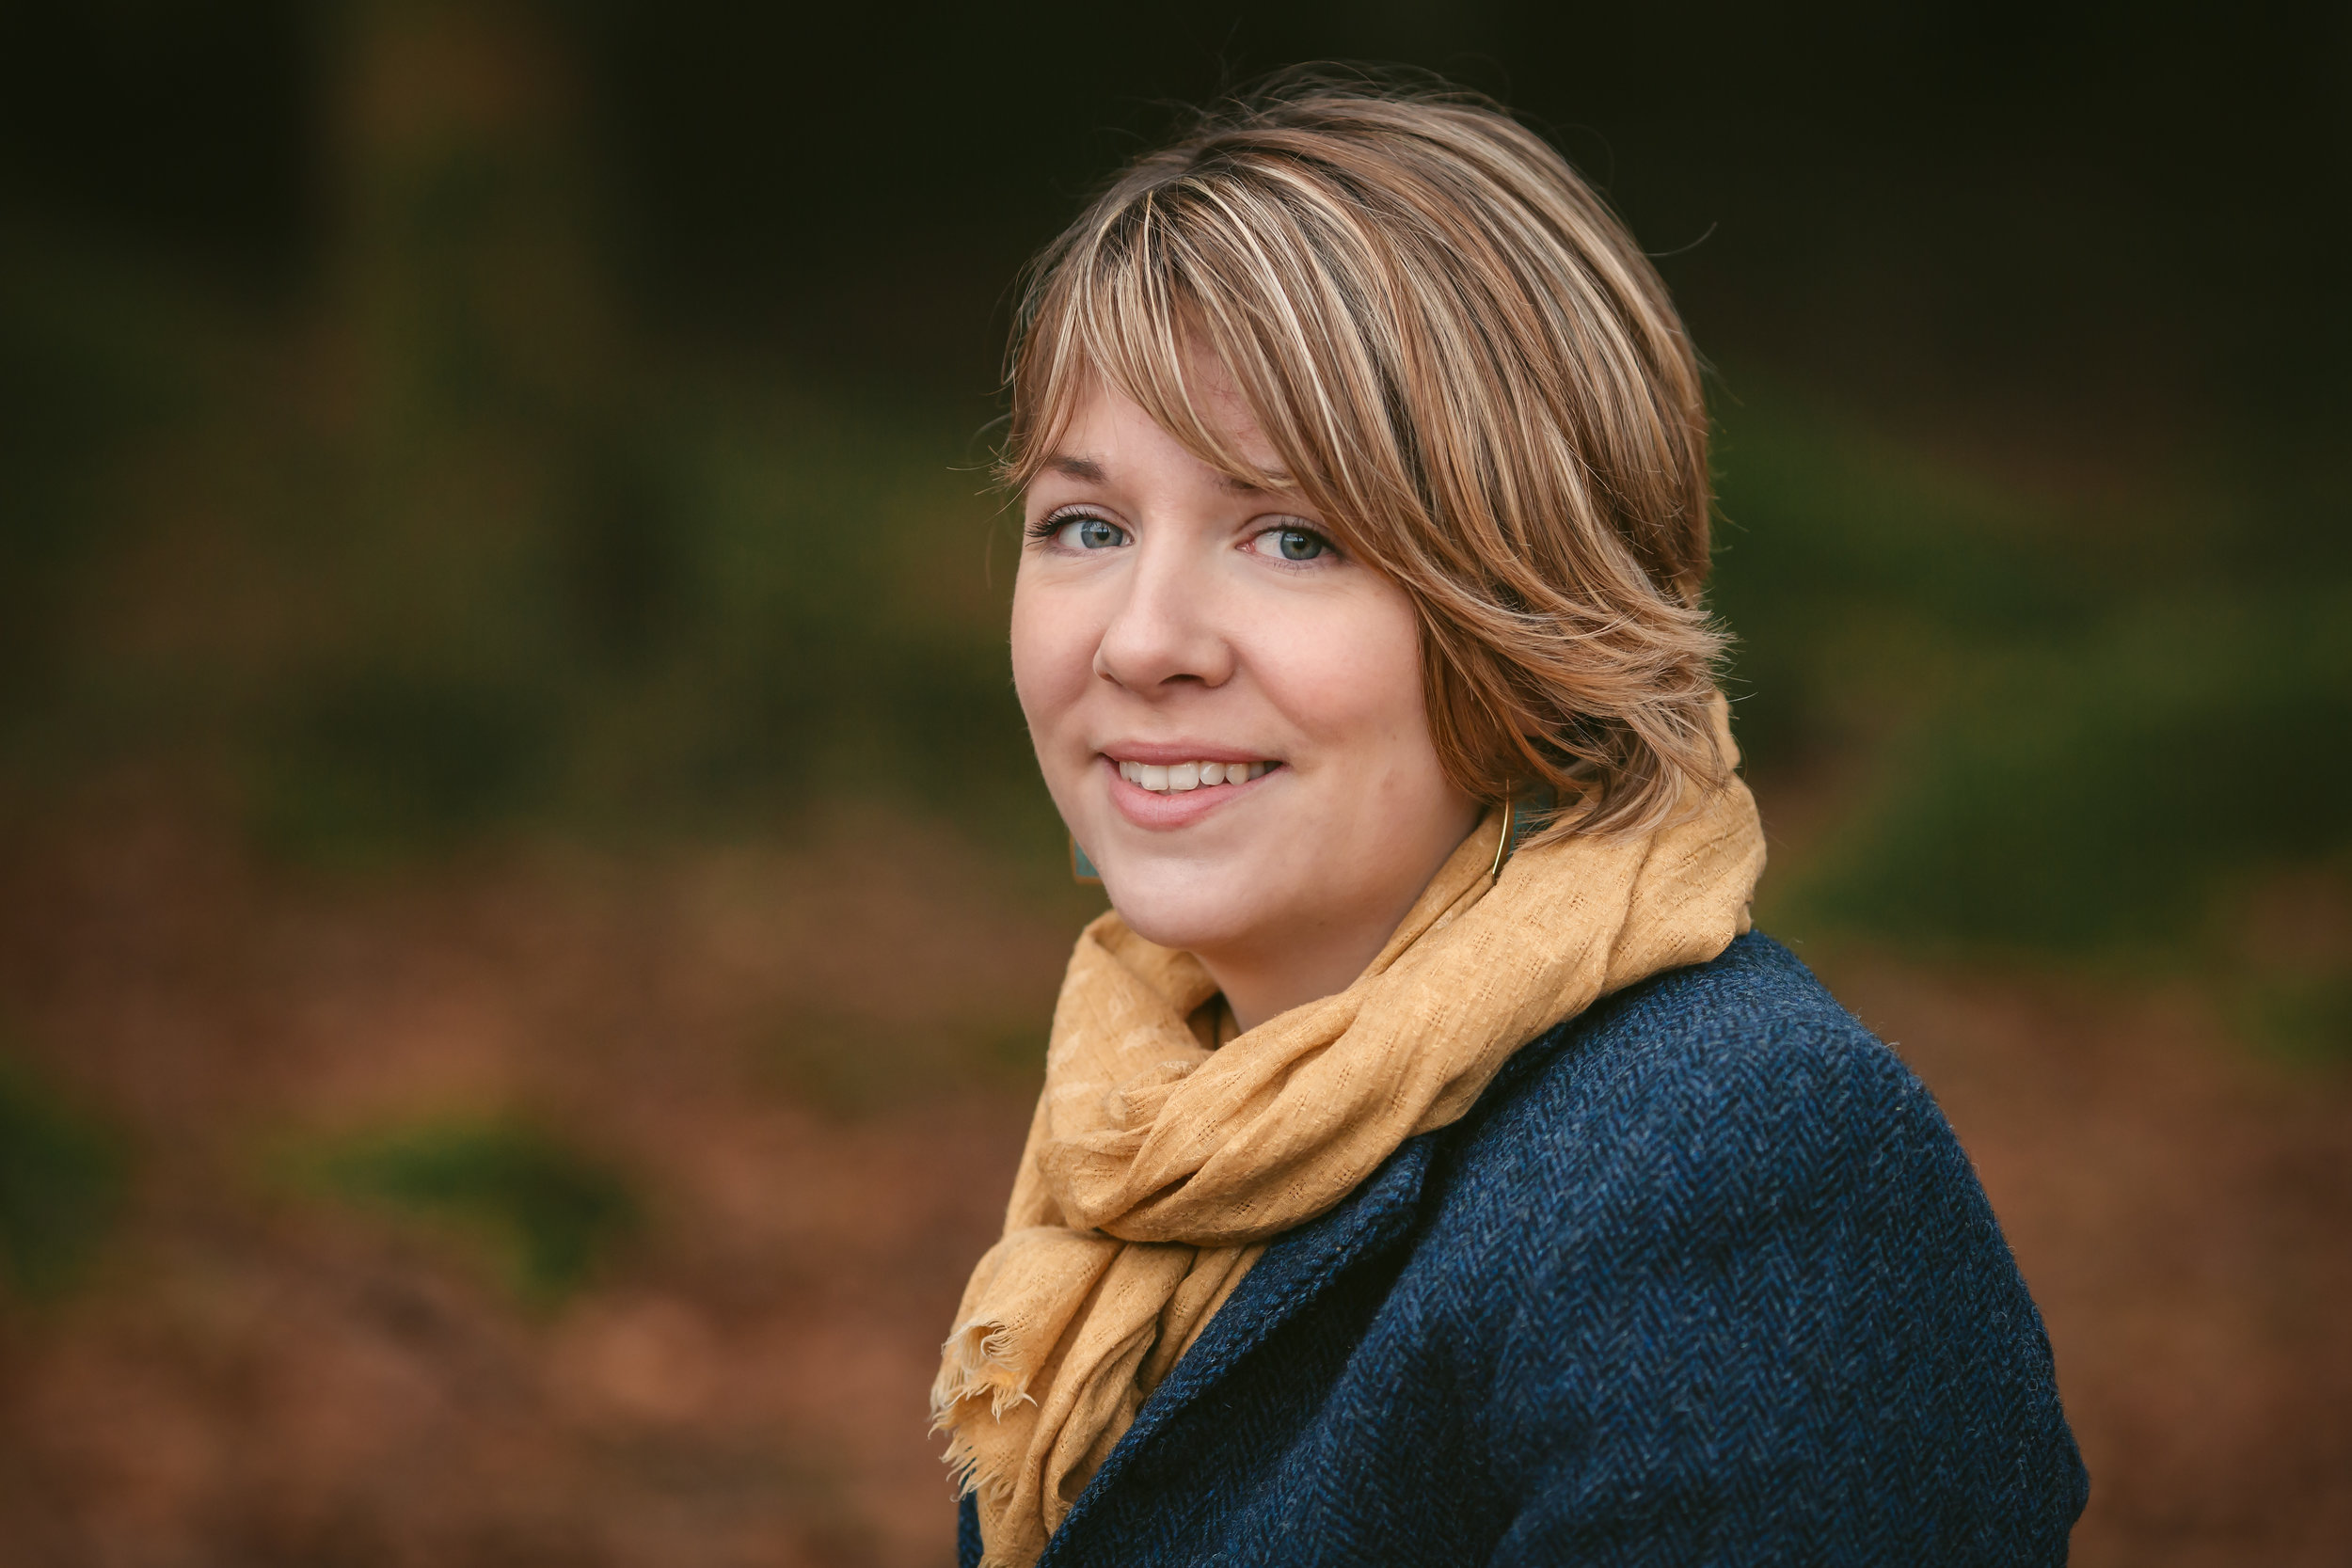 Okehampton Business Headshot Photography Devon